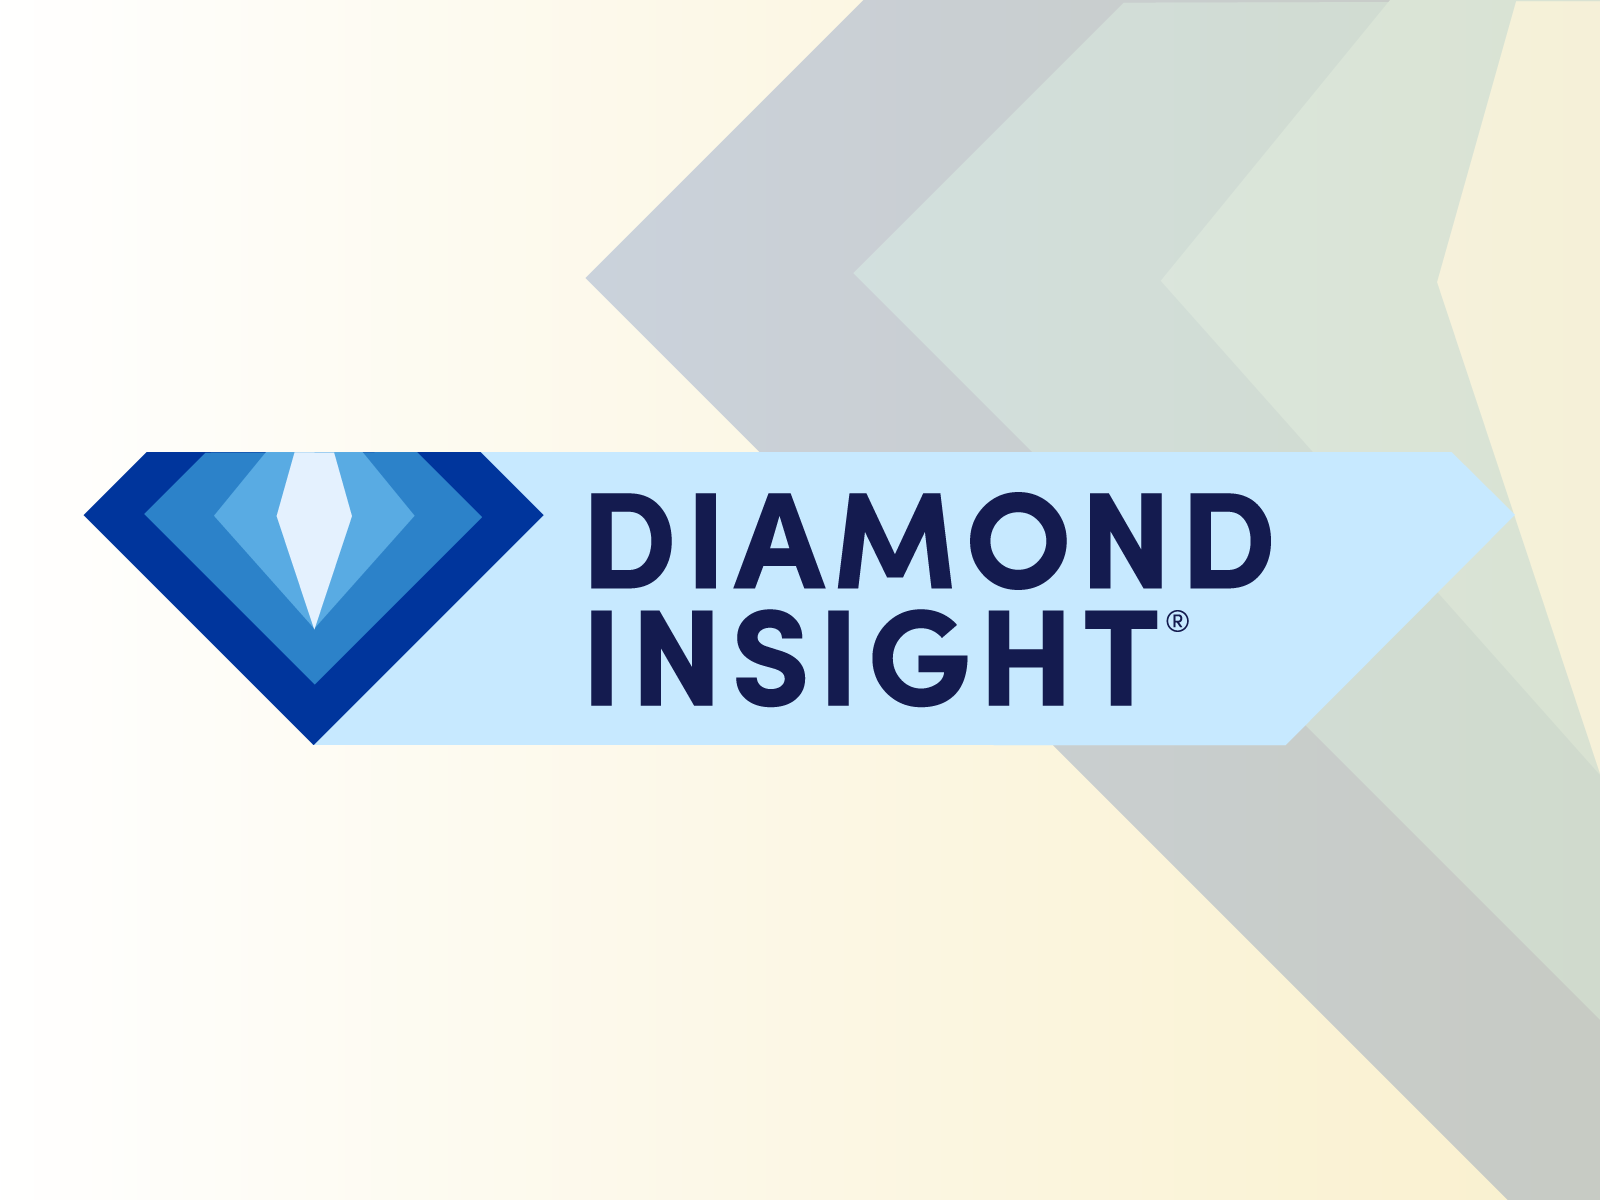 Diamond Insight project feature image with logo